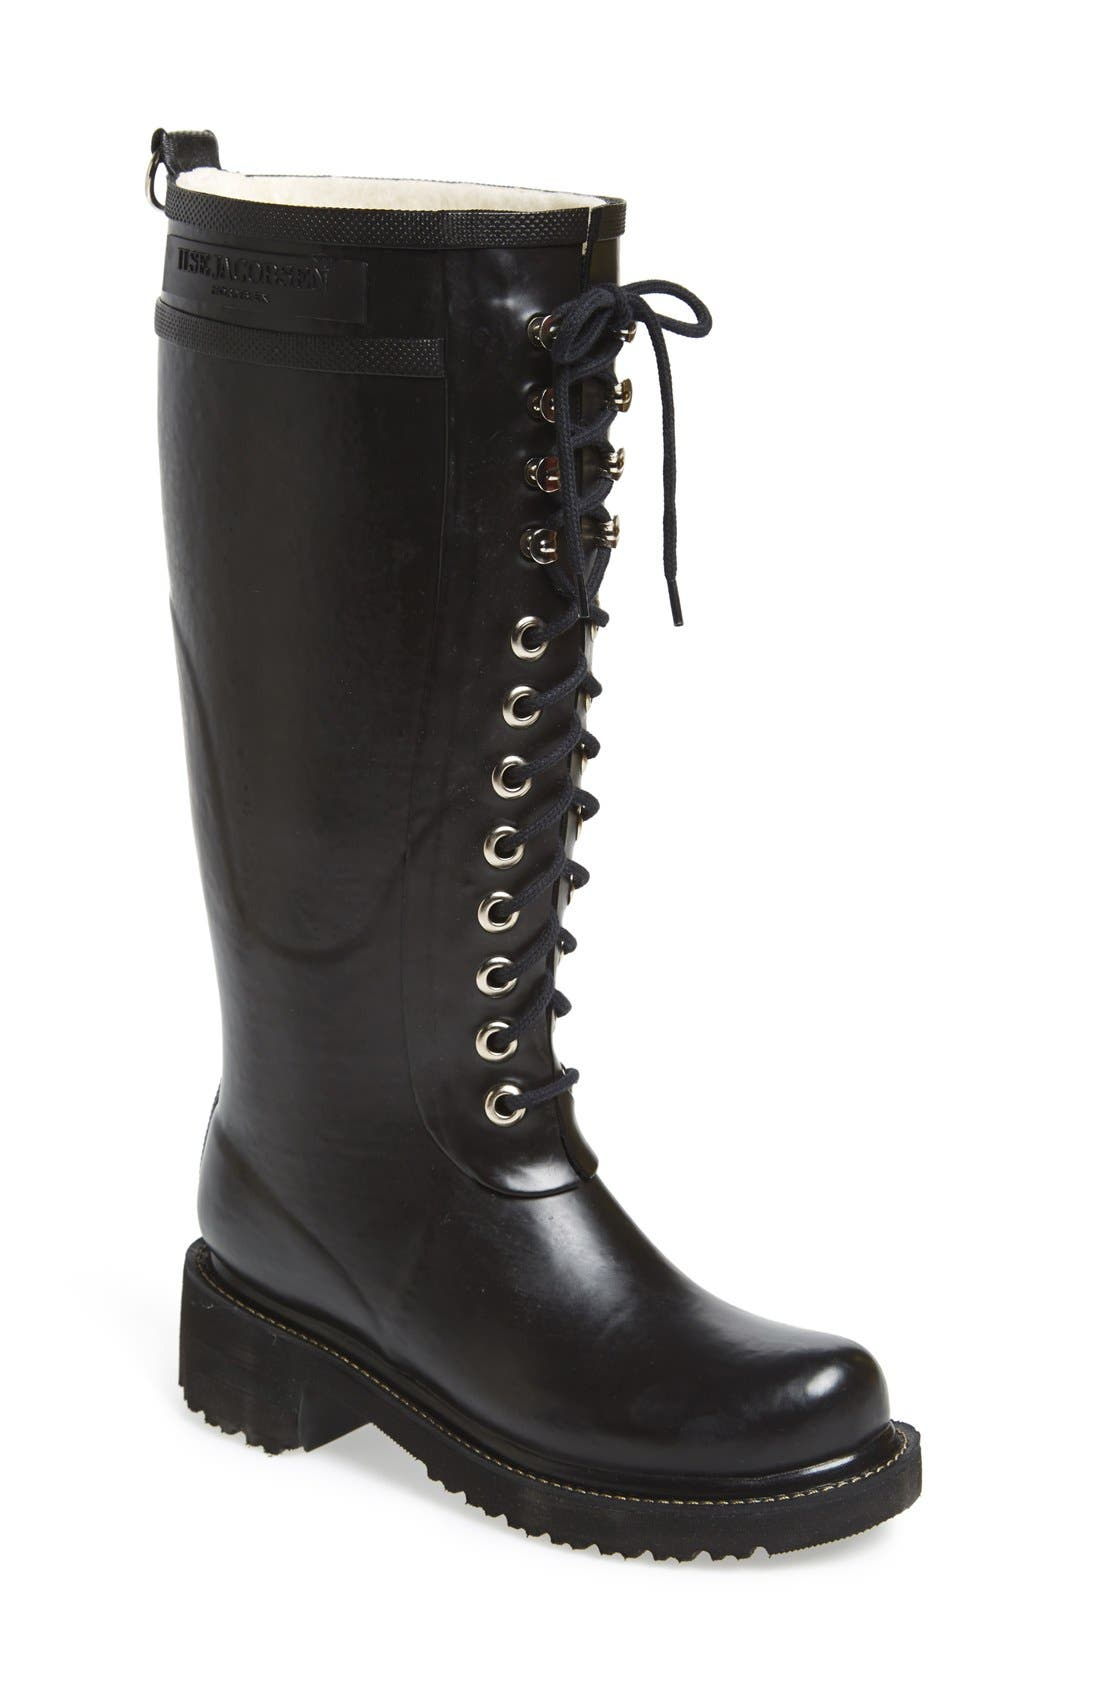 Waterproof Lace-Up Snow/Rain Boot,                         Main,                         color, 001